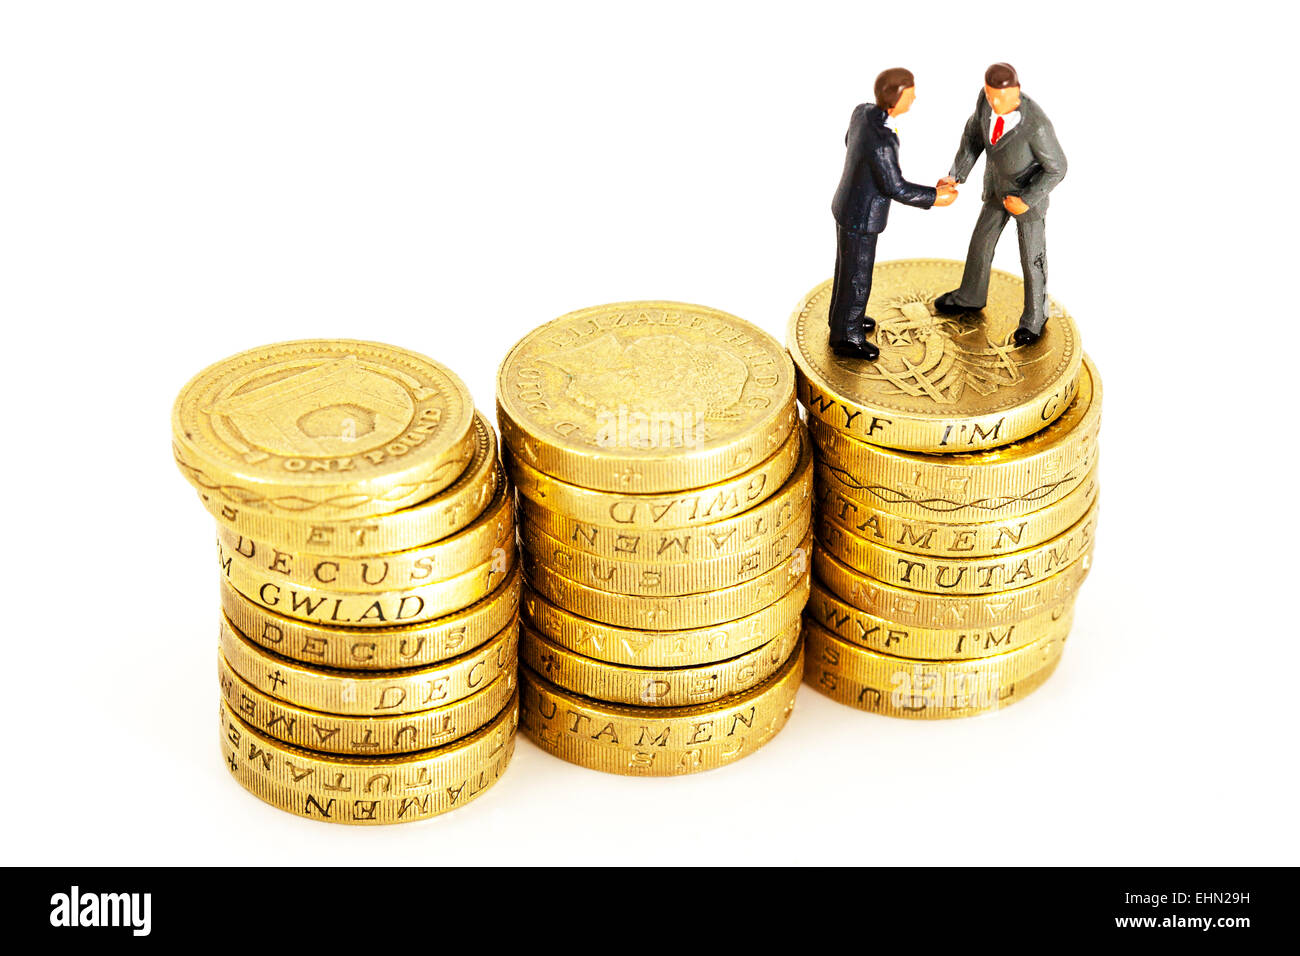 money deal business budget UK pound coins stacks businessmen isolated cut out cutout white background - Stock Image